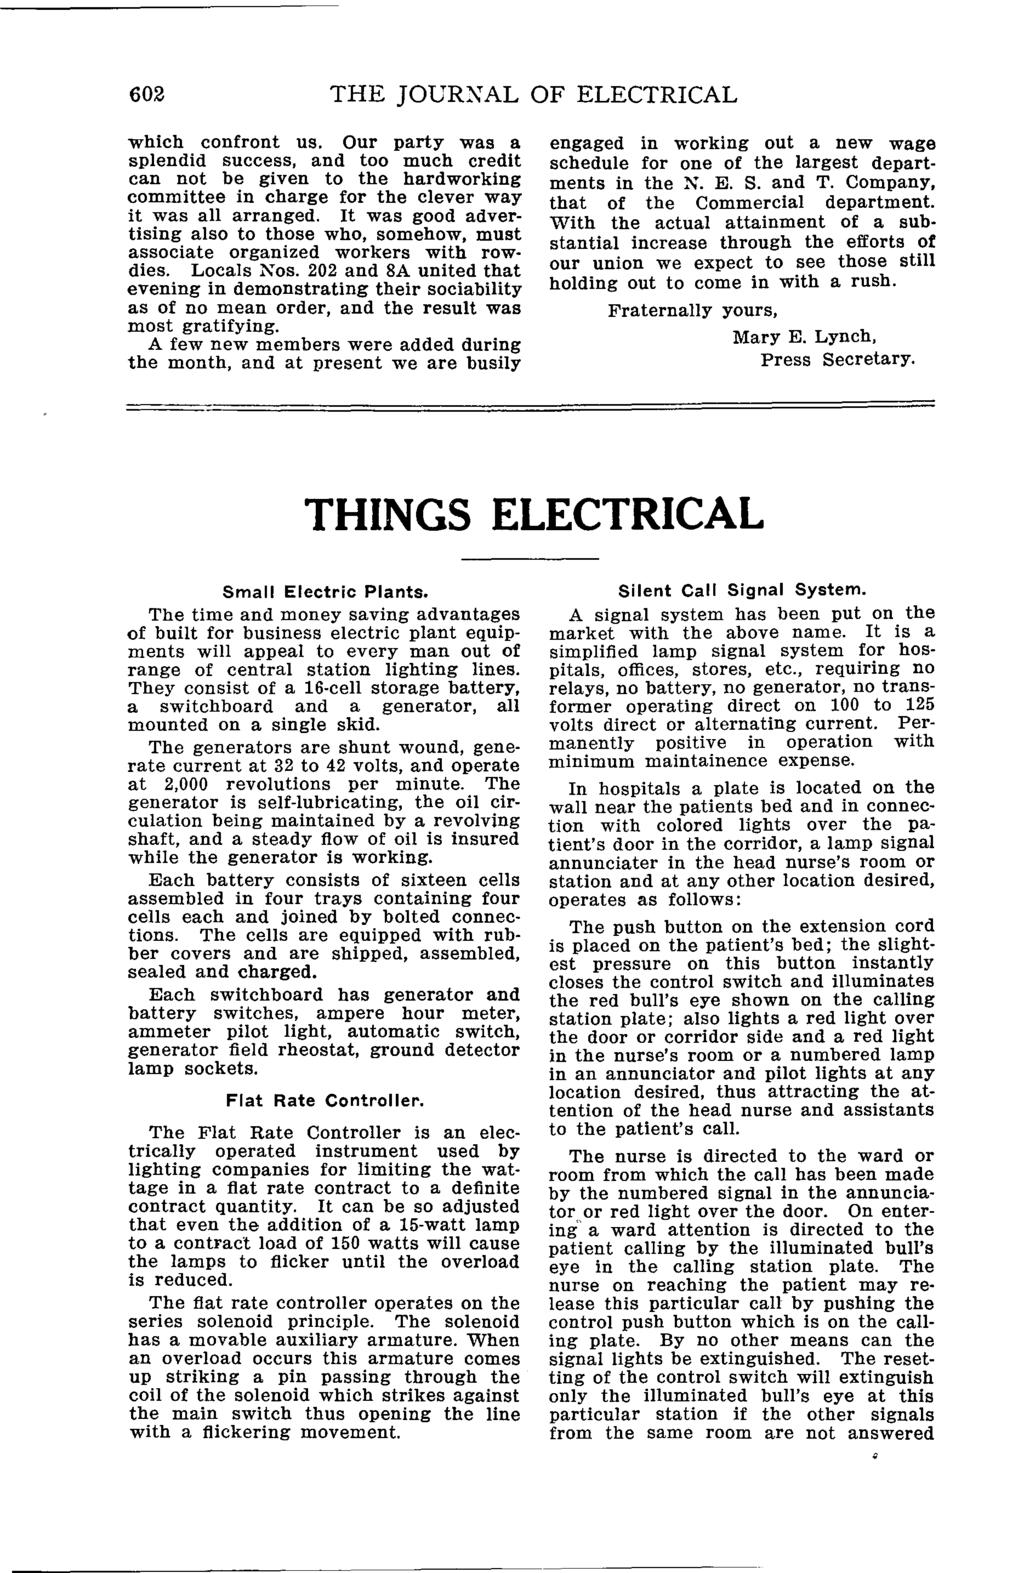 The Journal Of Tt1lcal Worlrp International Brotherhood Lincoln Sa 200 Idler Solenoid 602 Jourxal Electrical Which Confront Us Our Party Was A Splendid Success